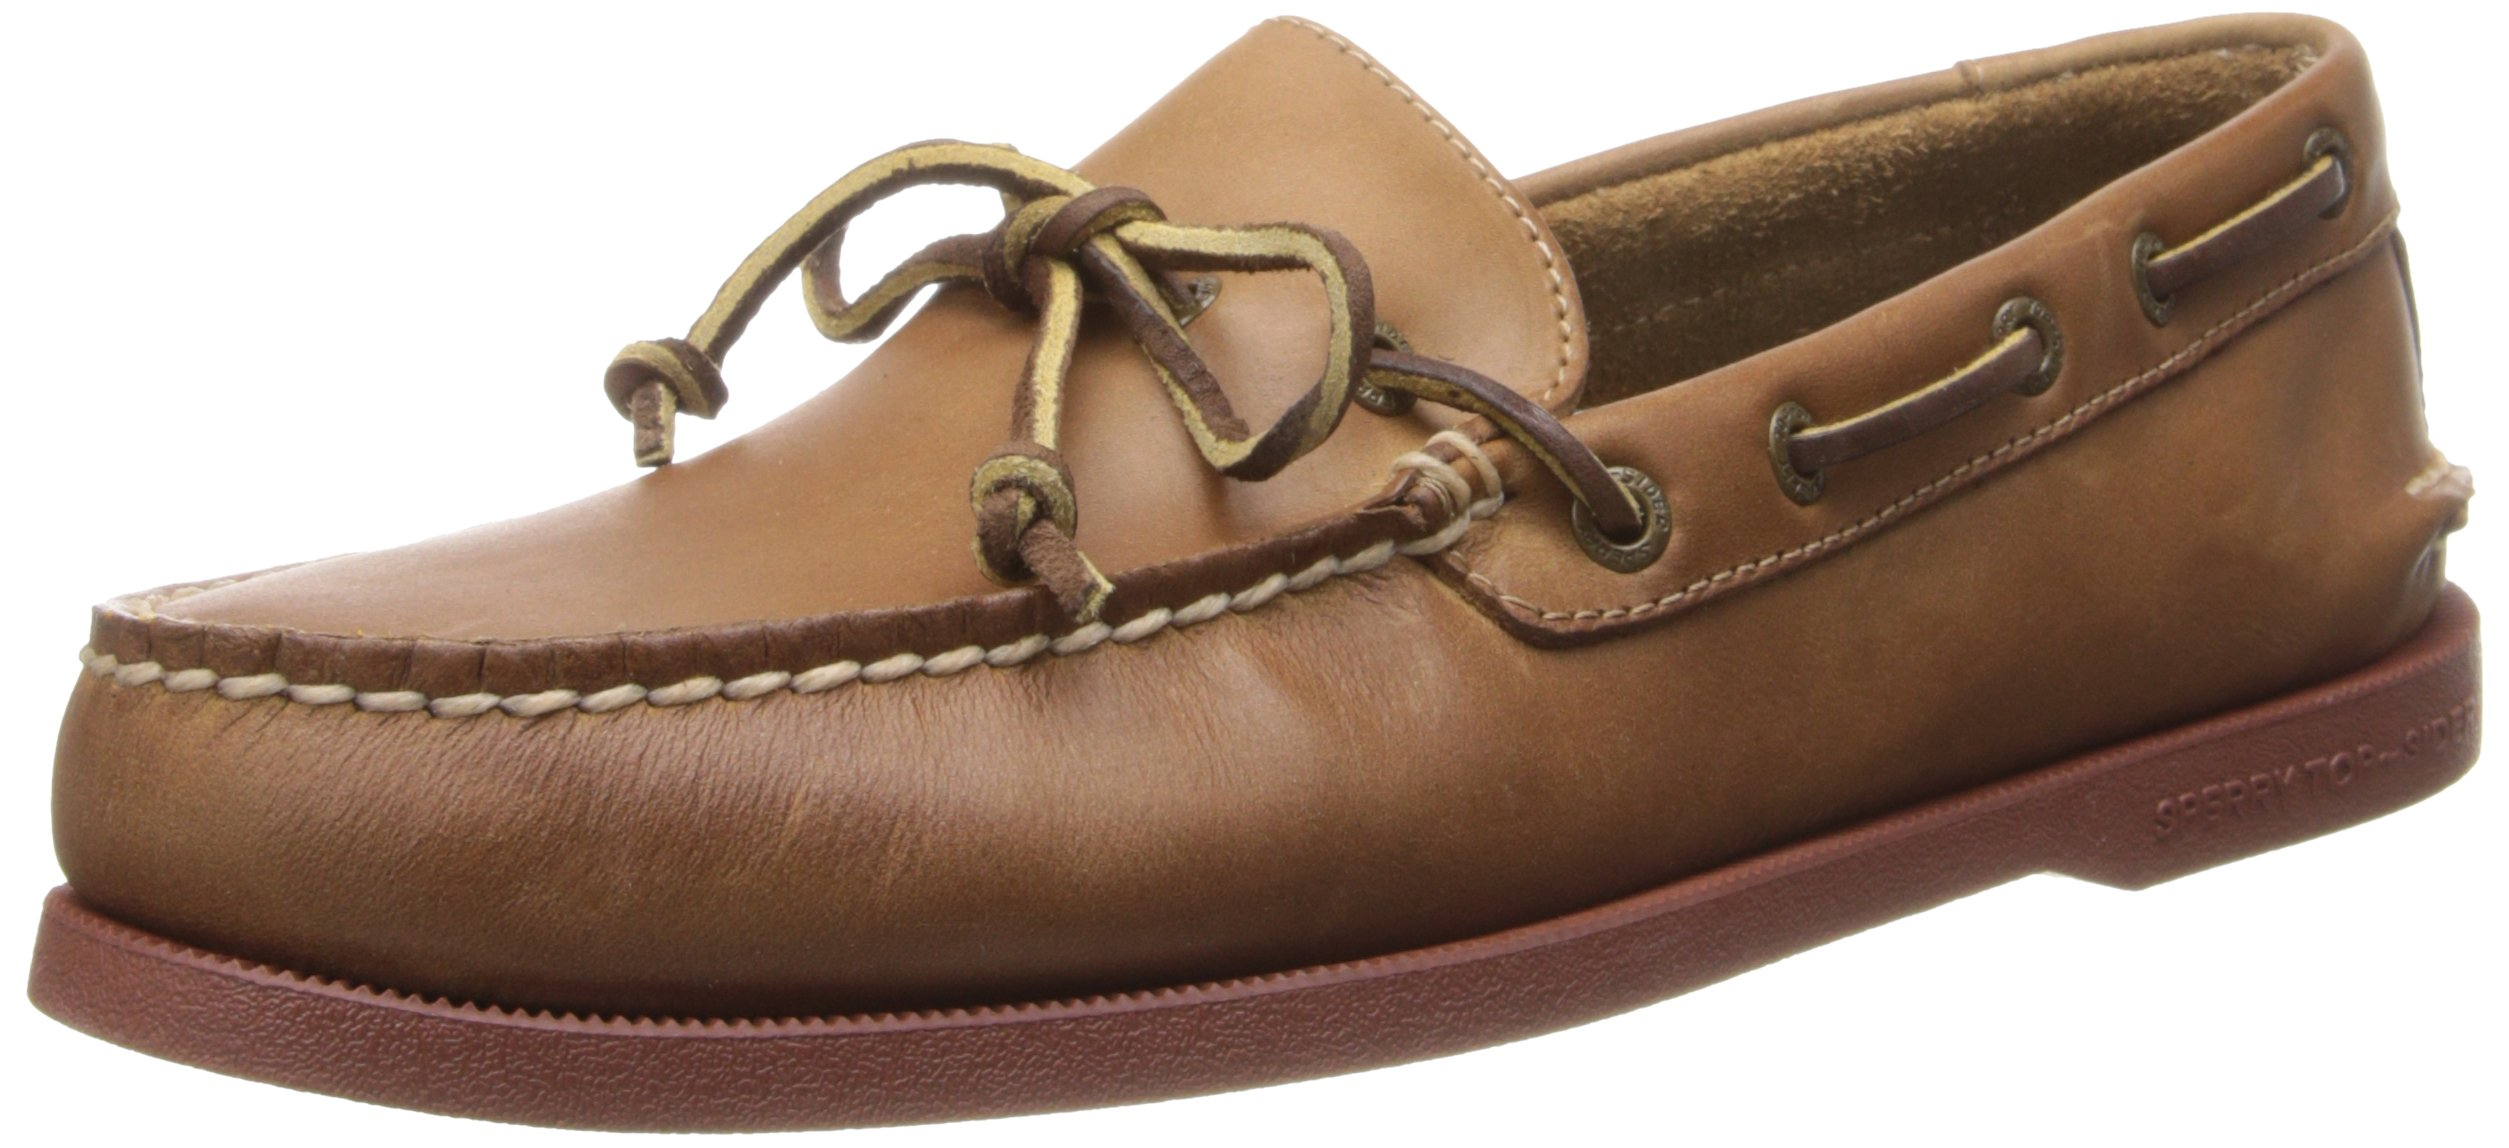 Sperry Top-Sider Men's Authentic Original One-Eye Boat Shoe